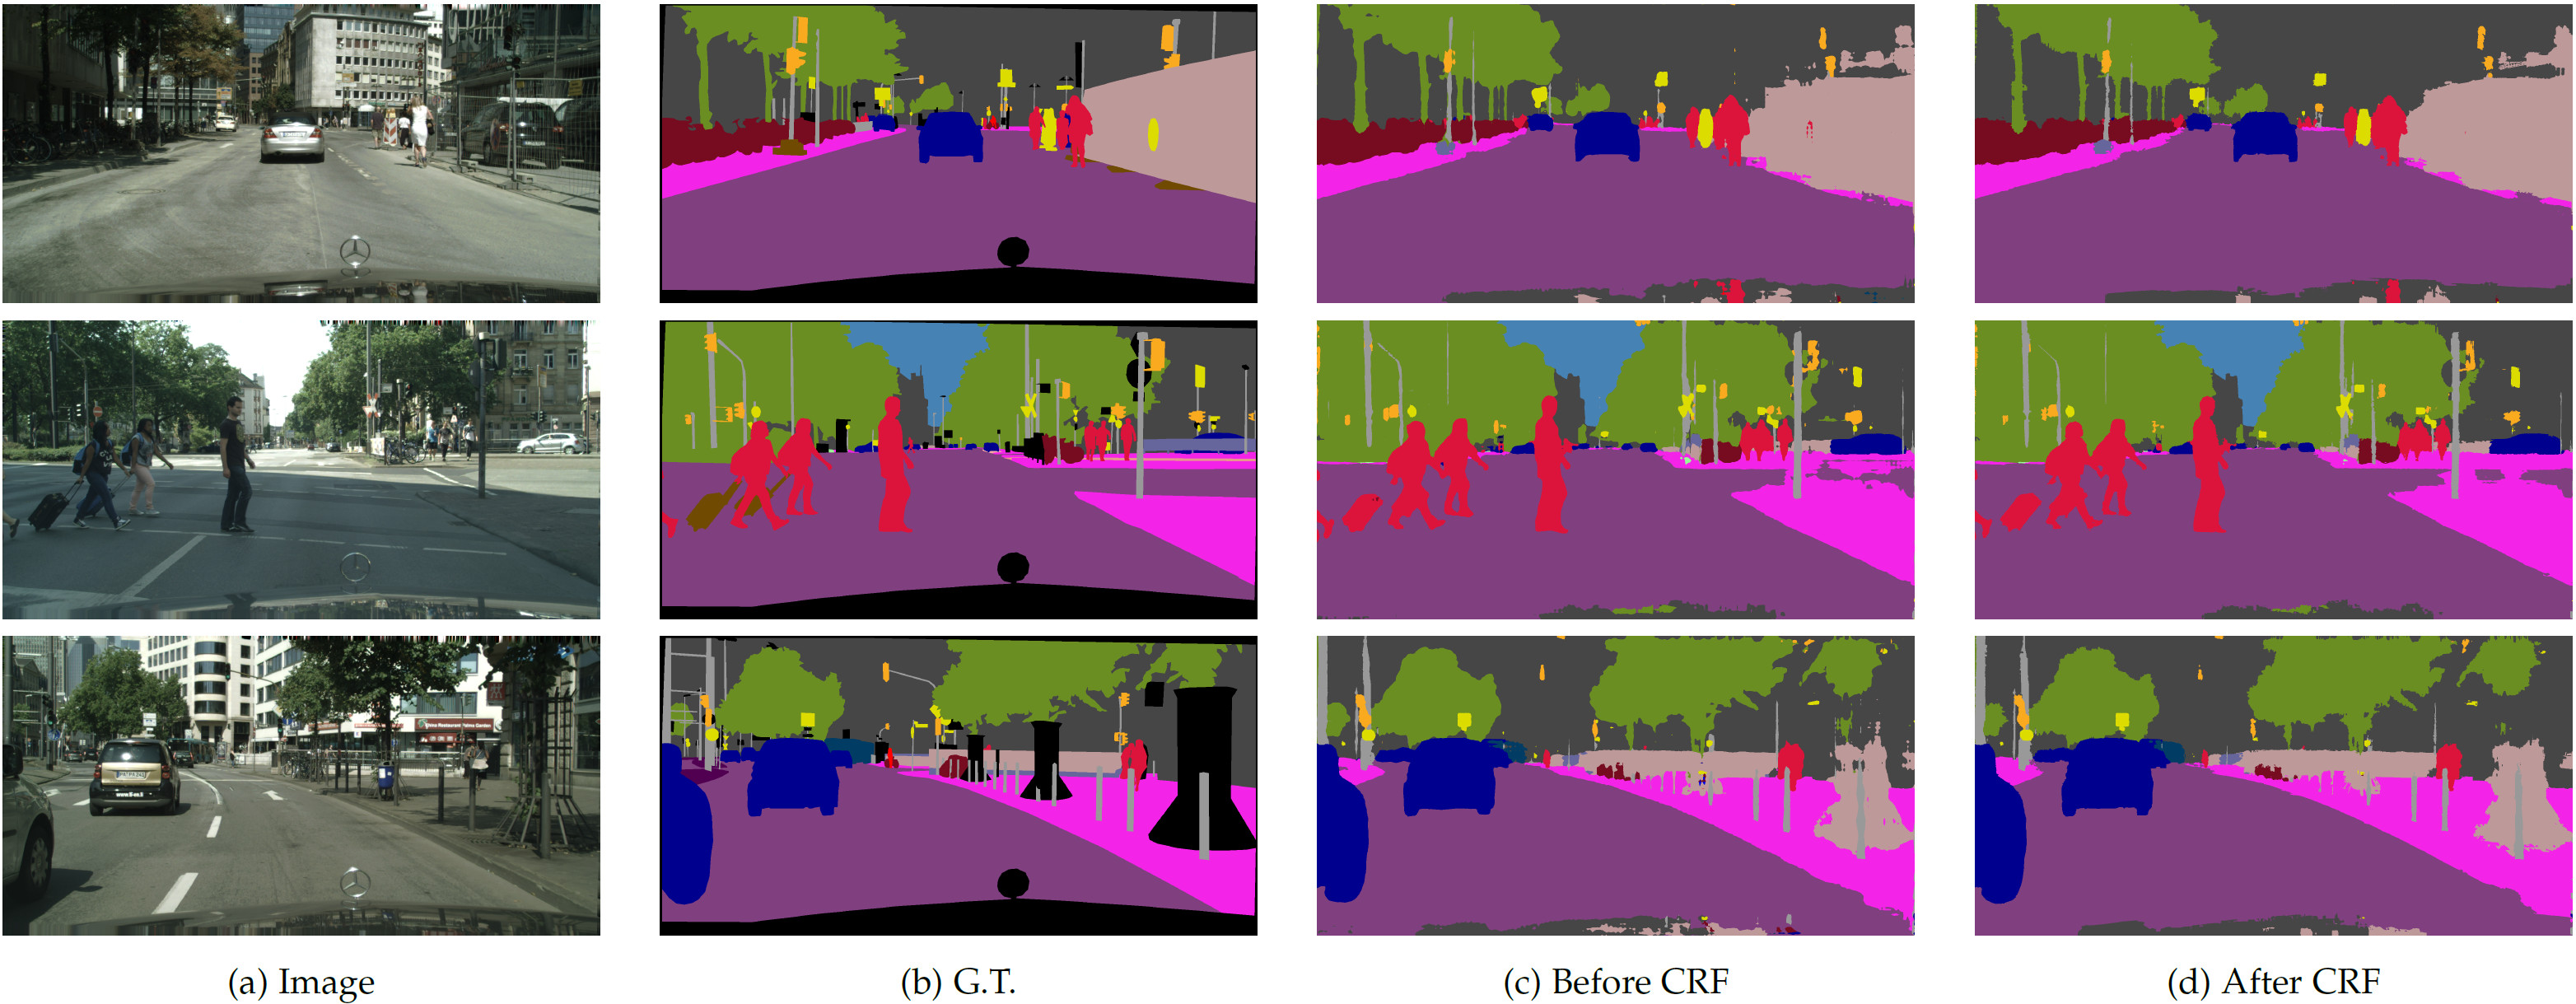 Cityscapes results. Input image, ground-truth, and our DeepLab results before/after CRF.